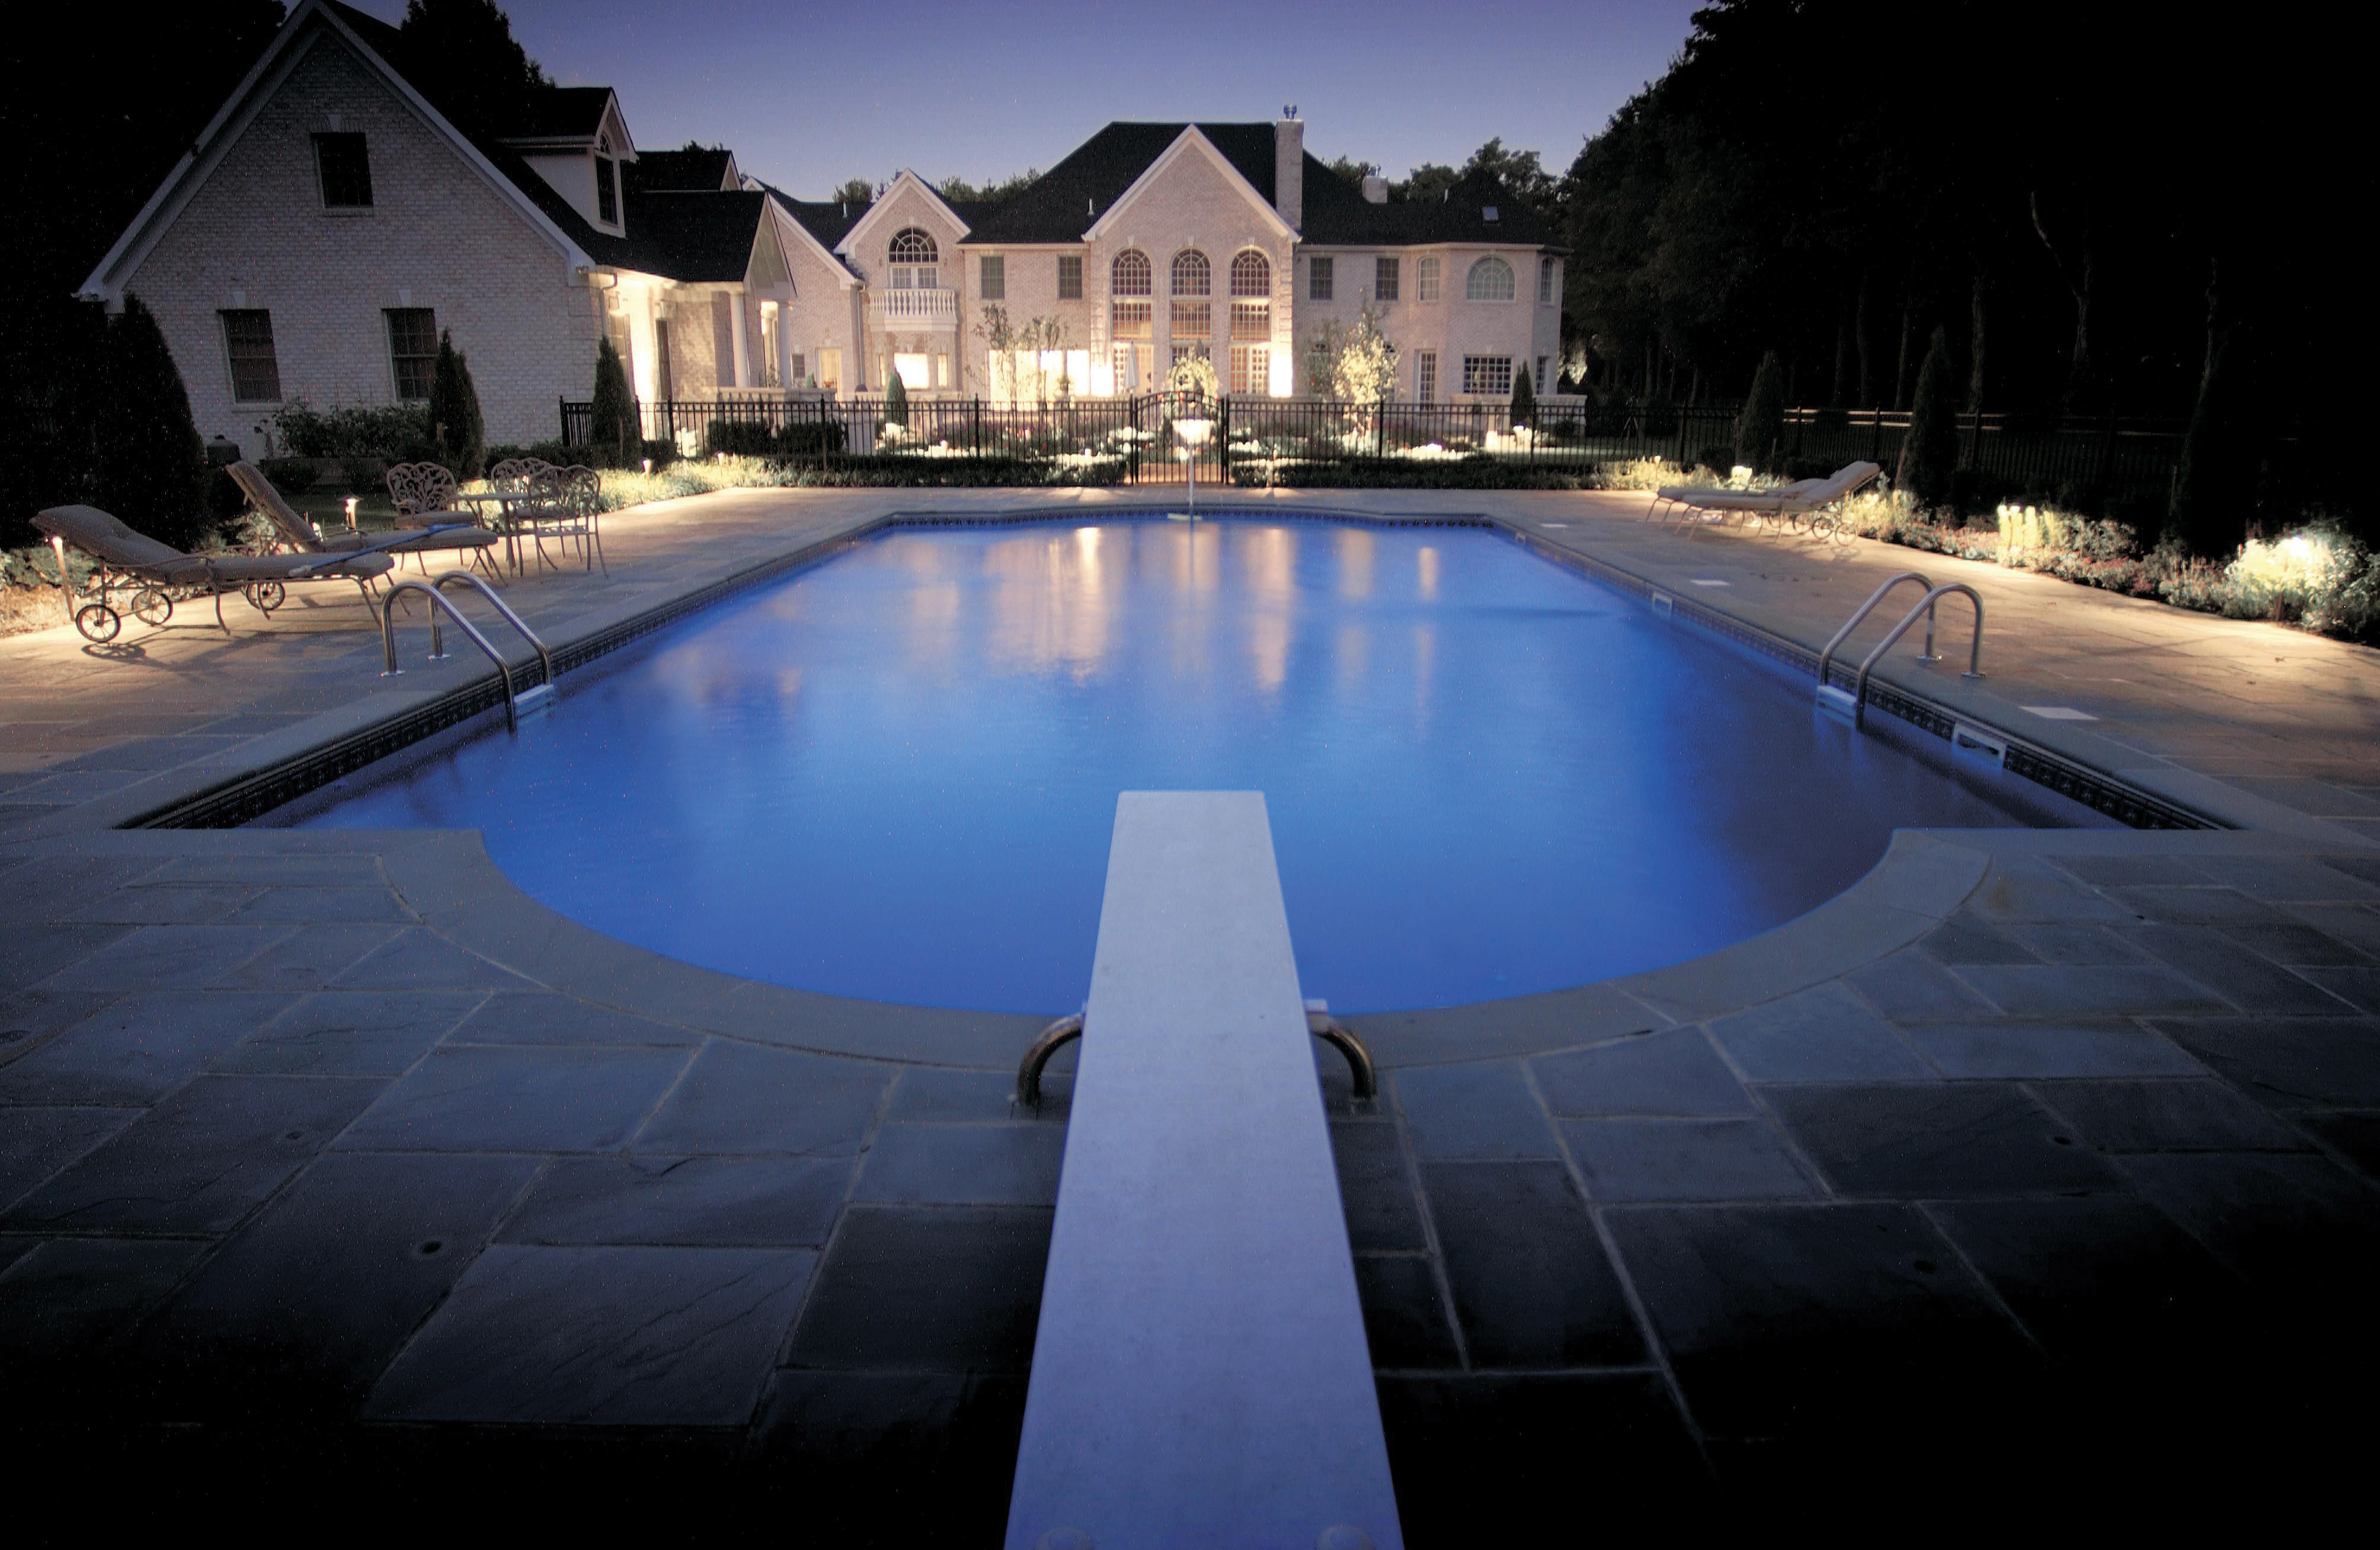 Light Can Connect Indoor And Outdoor Spaces And Screen Pools Windows And Other Private Areas